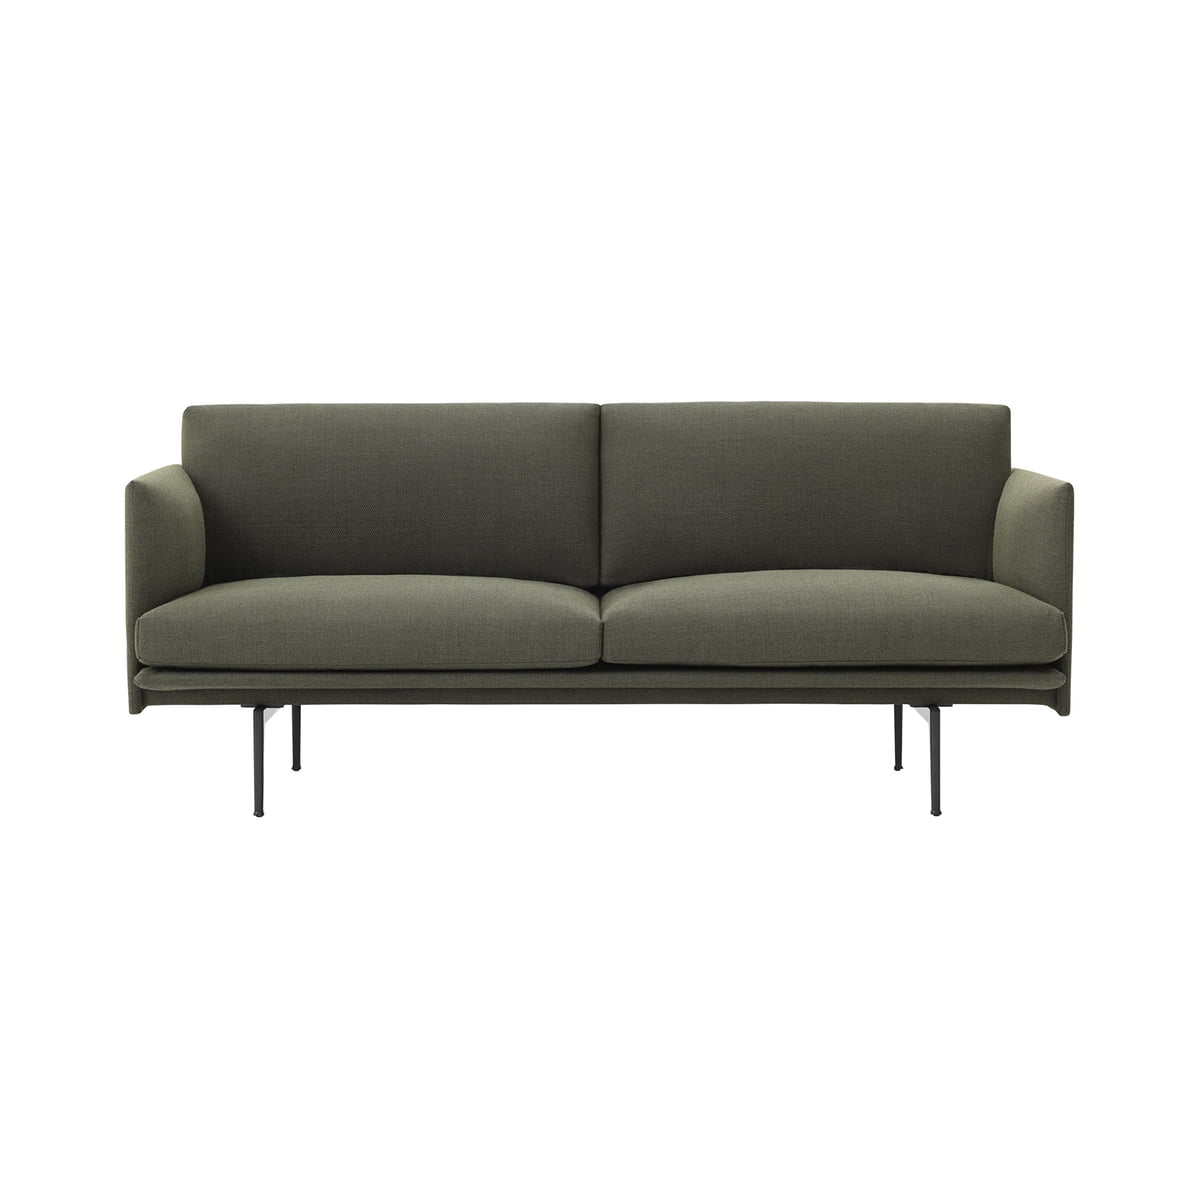 Muuto -Outline Sofa 2-Seater, fiord 151 / traffic black (RAL 9017) (EU)